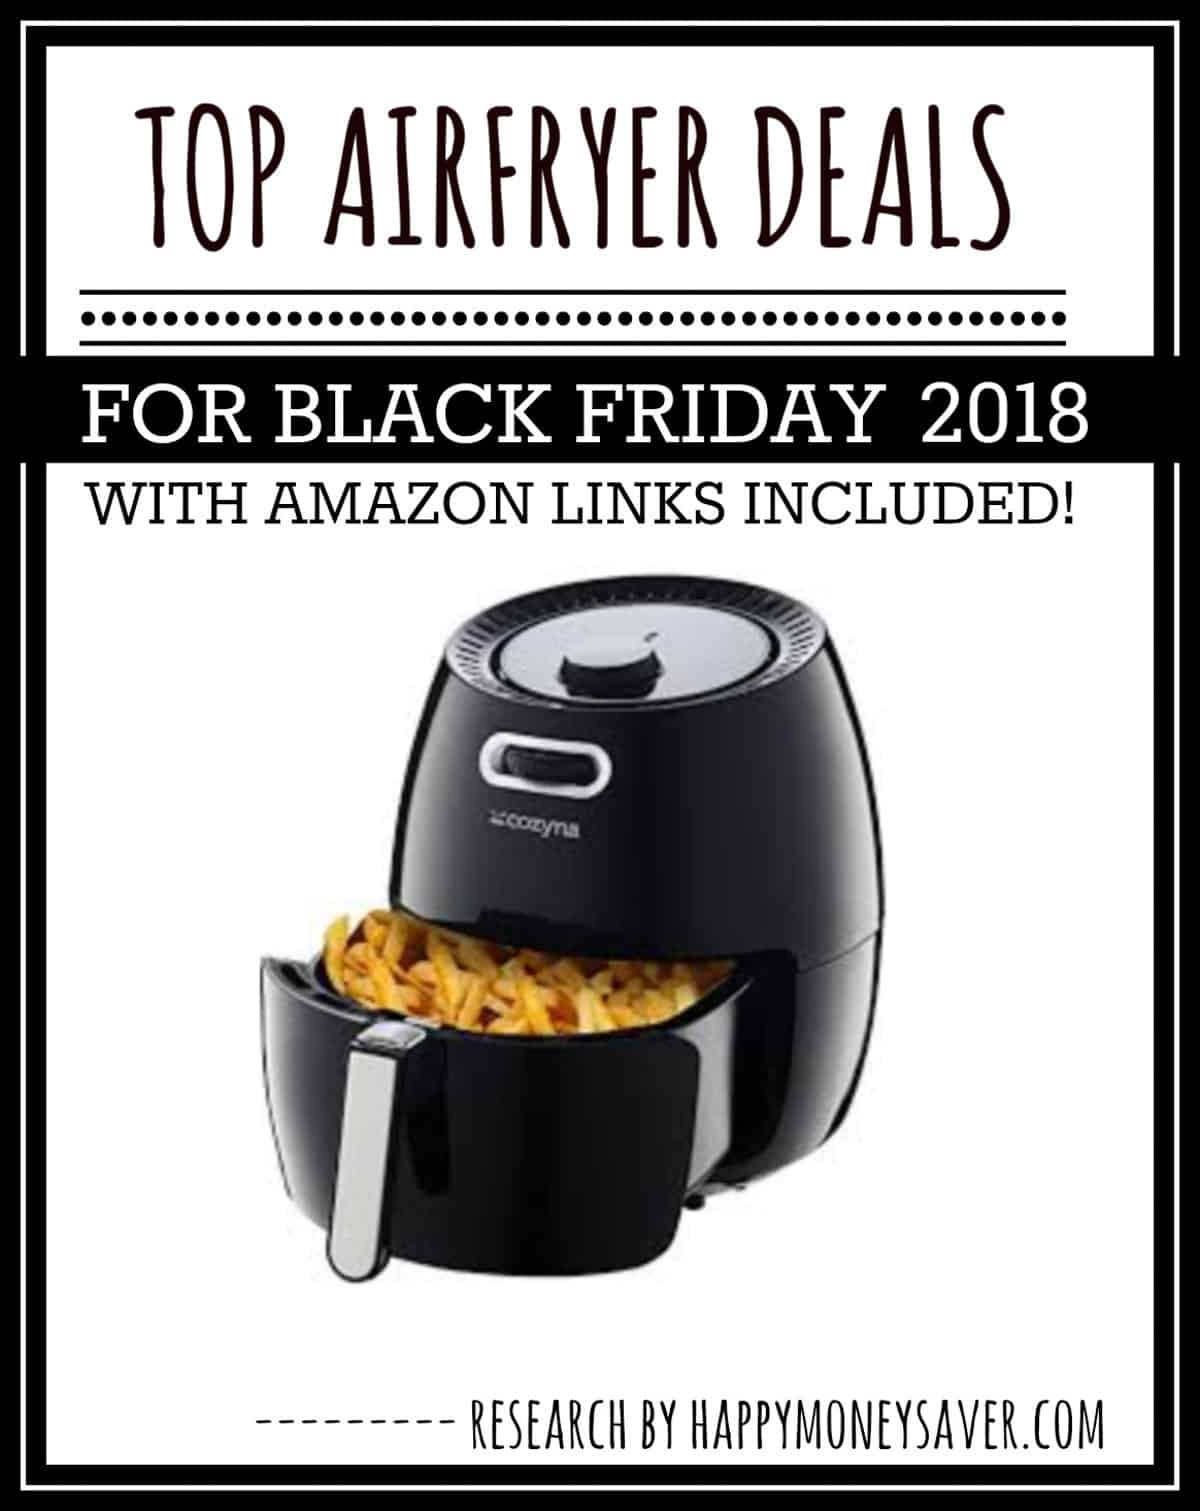 HUGE roundup of all the airfryer deals for Black Friday 2018